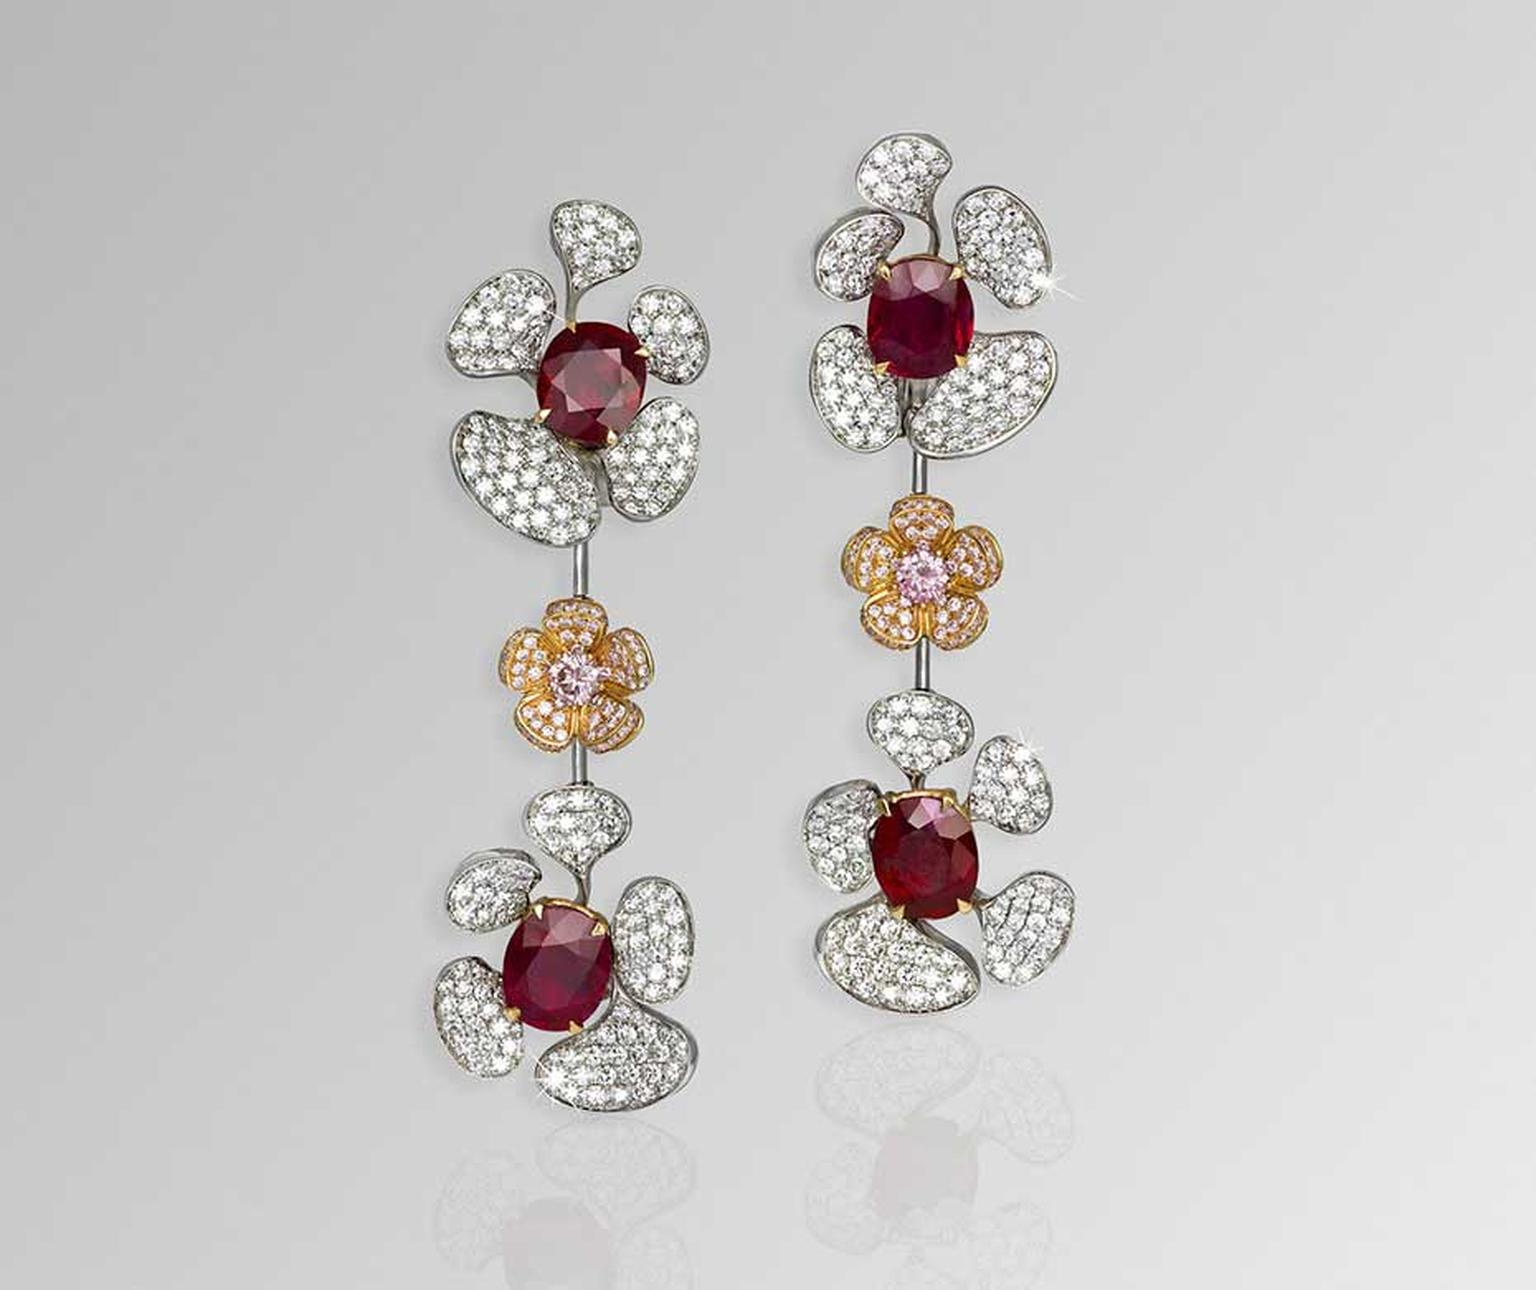 David Morris high jewellery Wild Flower Burmese ruby earrings with white and pink diamonds, set with 14.37ct rubies.